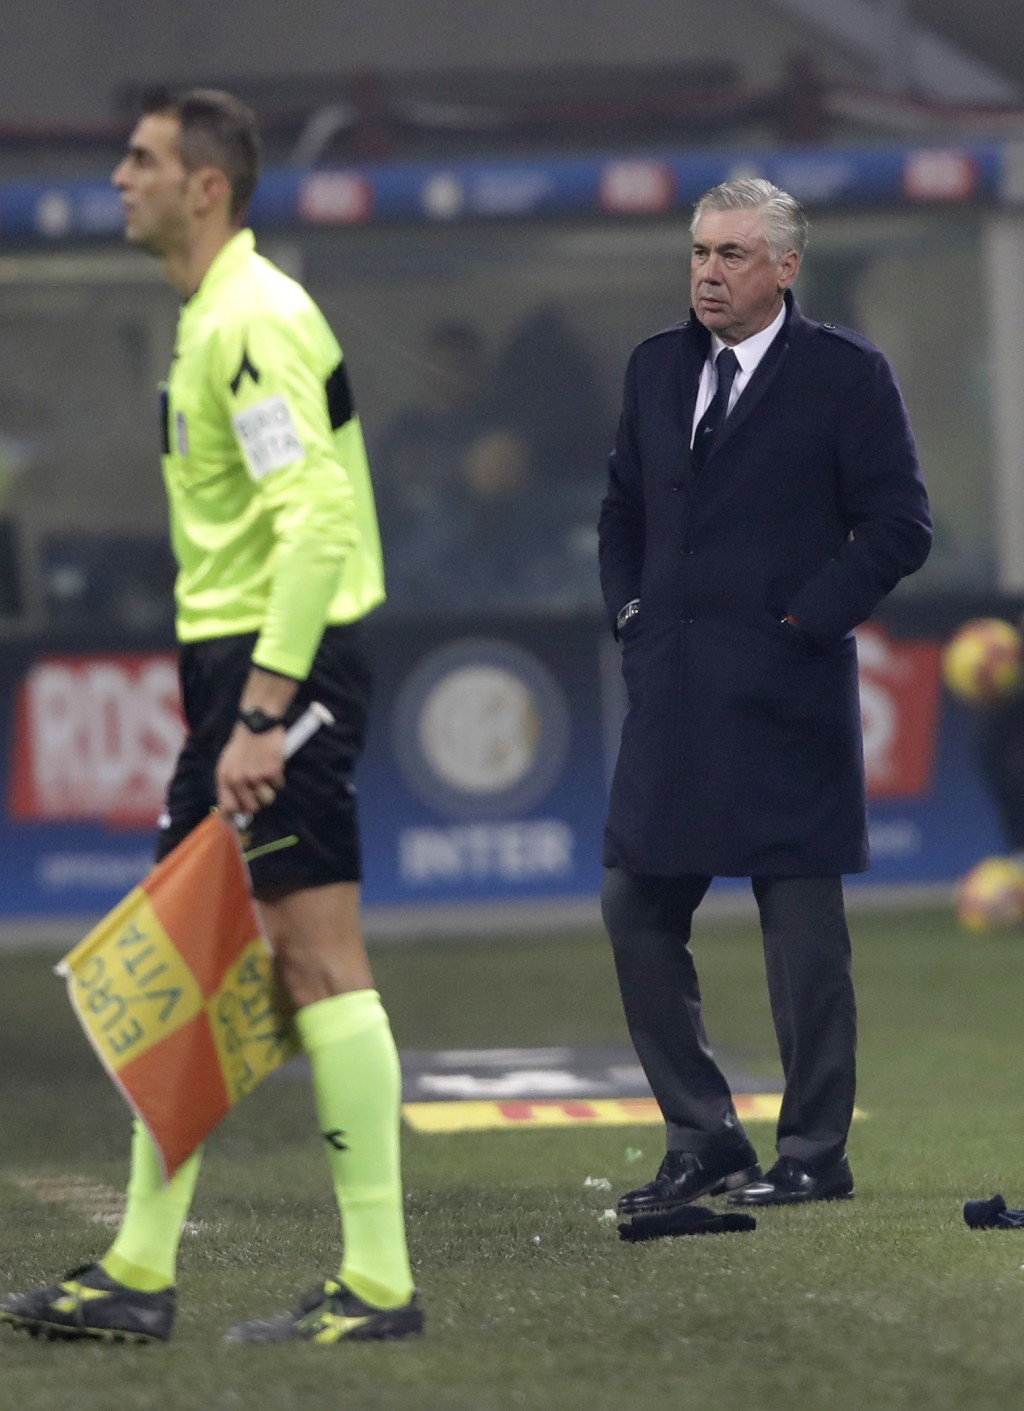 Napoli coach Carlo Ancelotti stands during a Serie A soccer match between Inter Milan and Napoli, at the San Siro stadium in Milan, Italy, Wednesday,